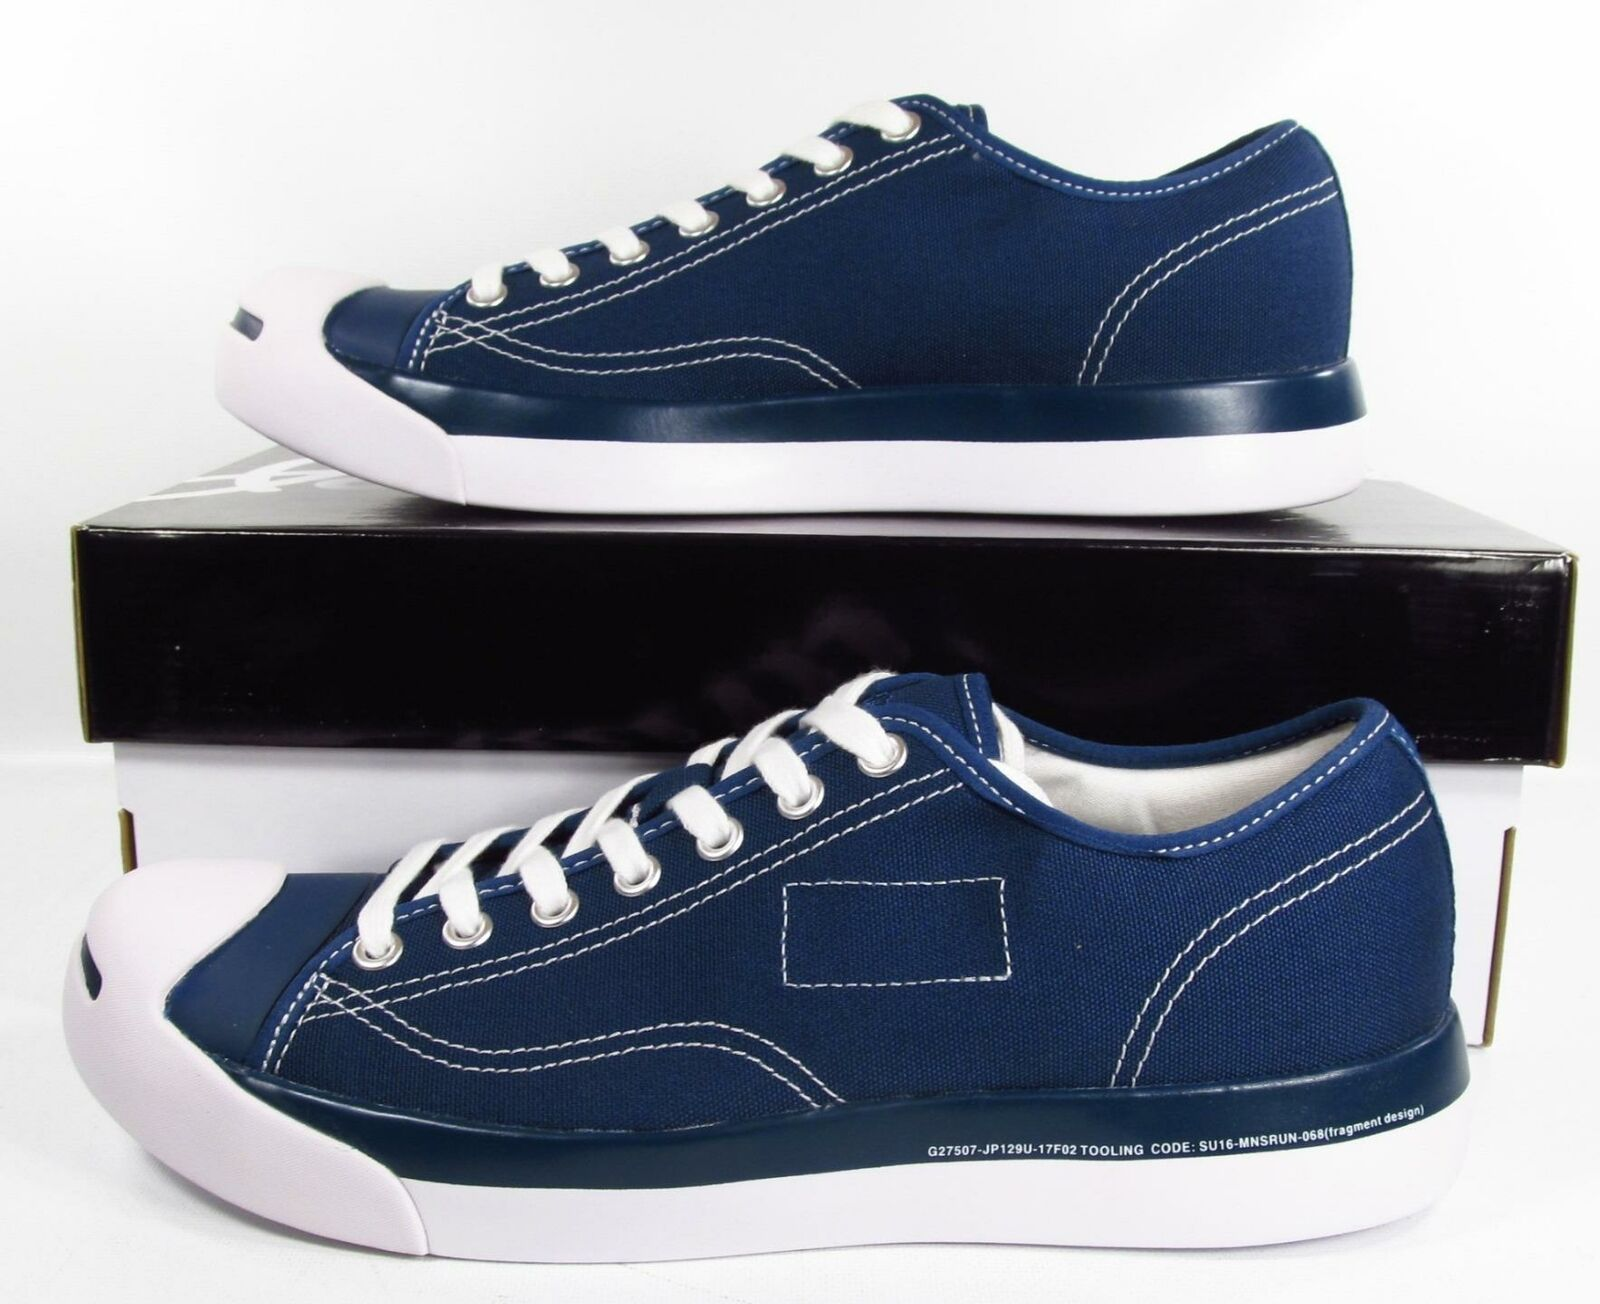 Converse Jack Purcell Modern Fragment Design Navy